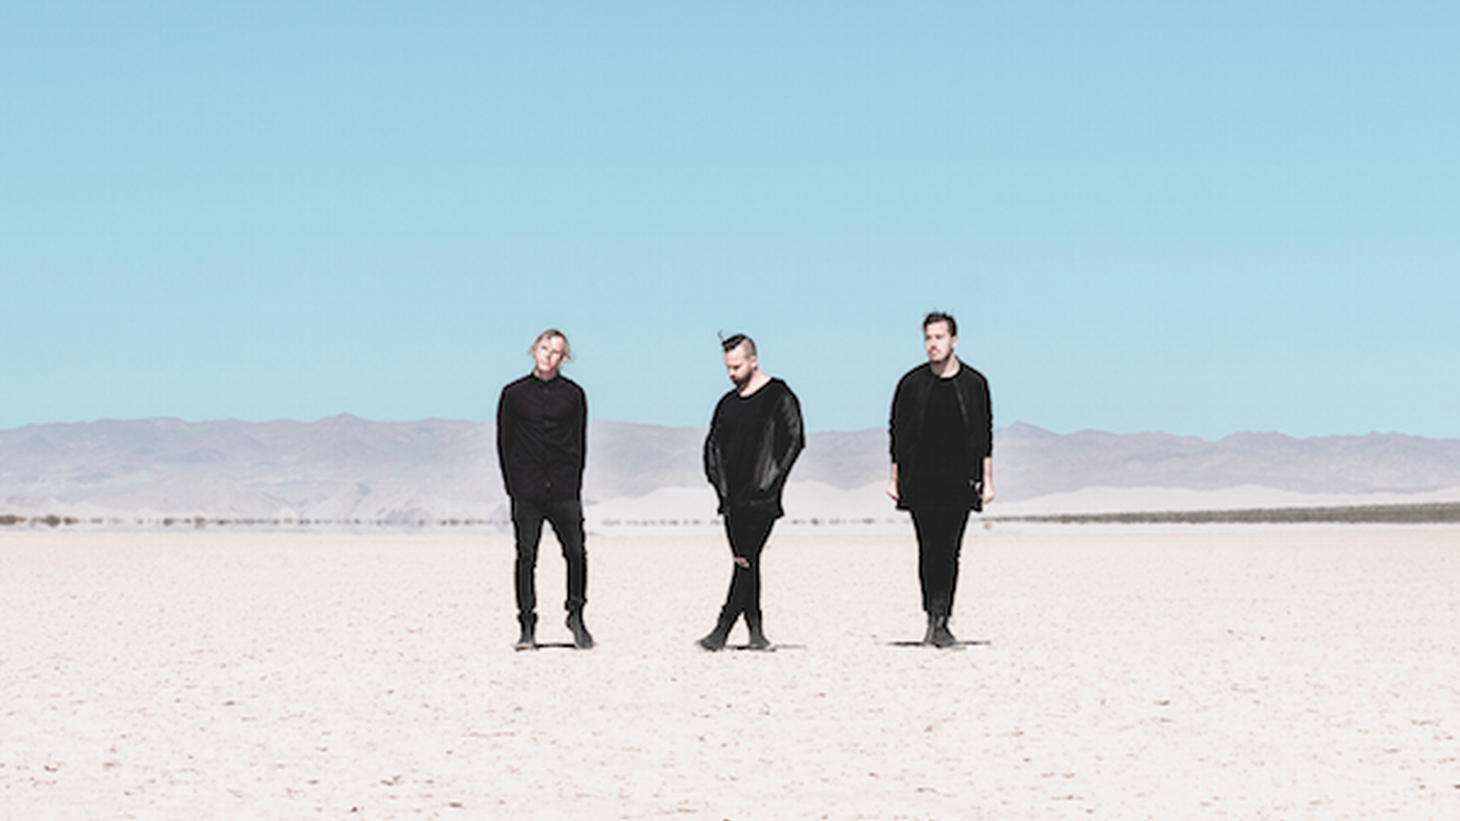 LA-based Australian trio Rüfüs Du Sol are quickly becoming one of the most popular live electronic bands in the world. They kick off a massive North American tour in October, including sold out dates at The Shrine.